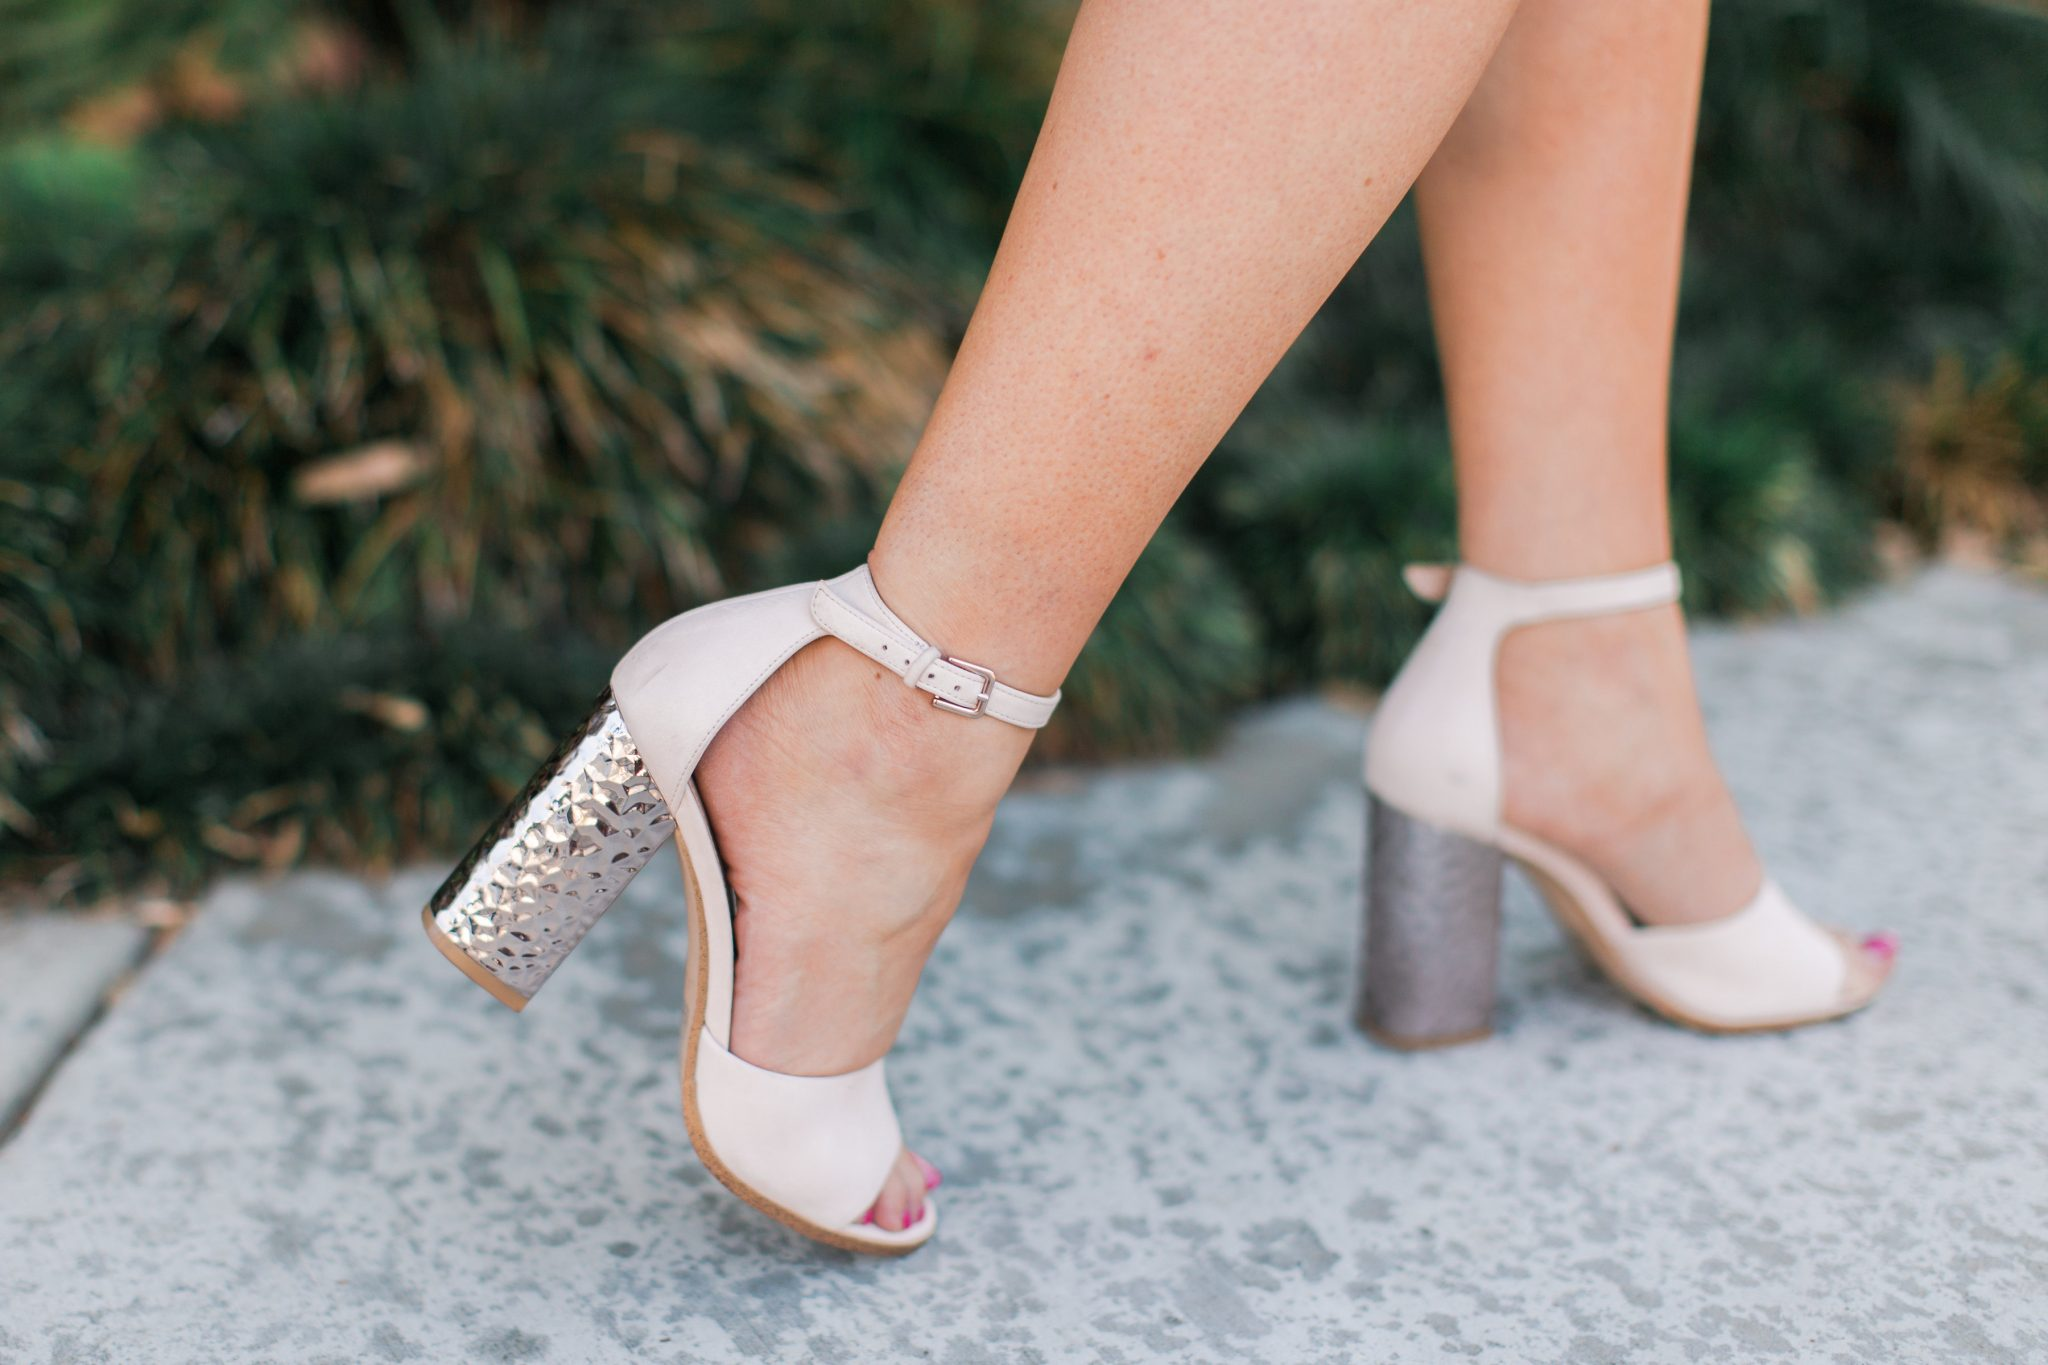 Maxie Elle | Rose gold heels - Wedding Shower Outfit by popular Orange County fashion blogger Maxie Elle